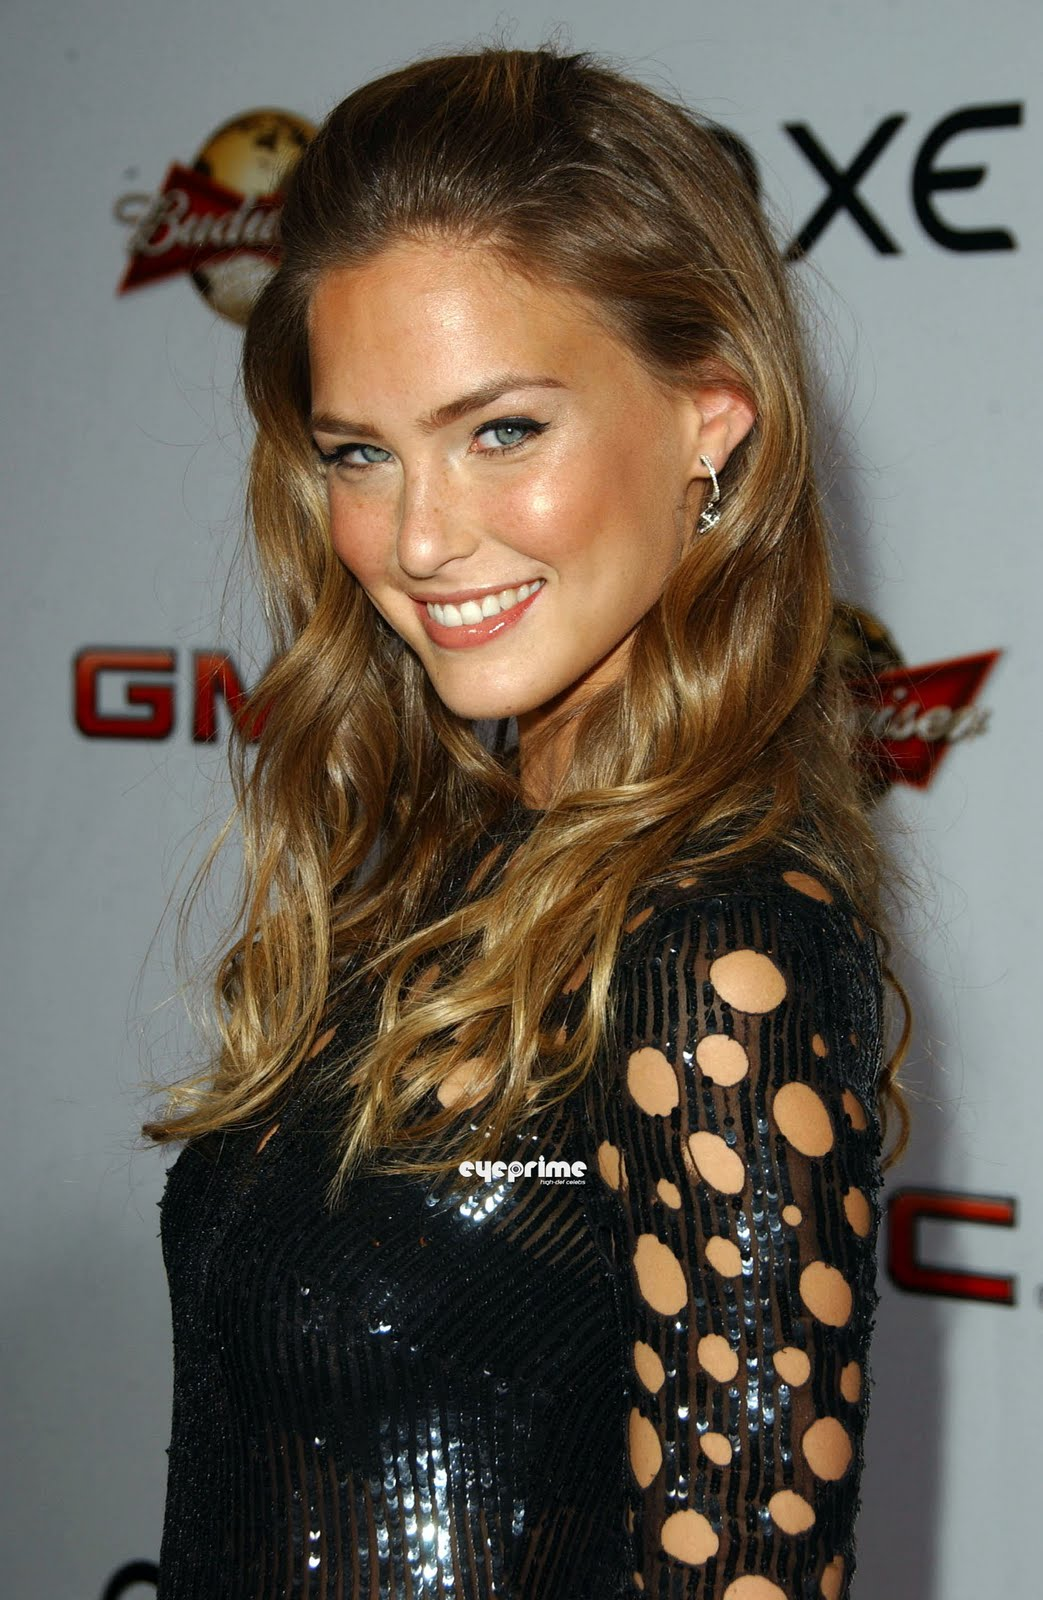 Wallpaper World Bar Refaeli Sexy Pictures By The 2007 -9961